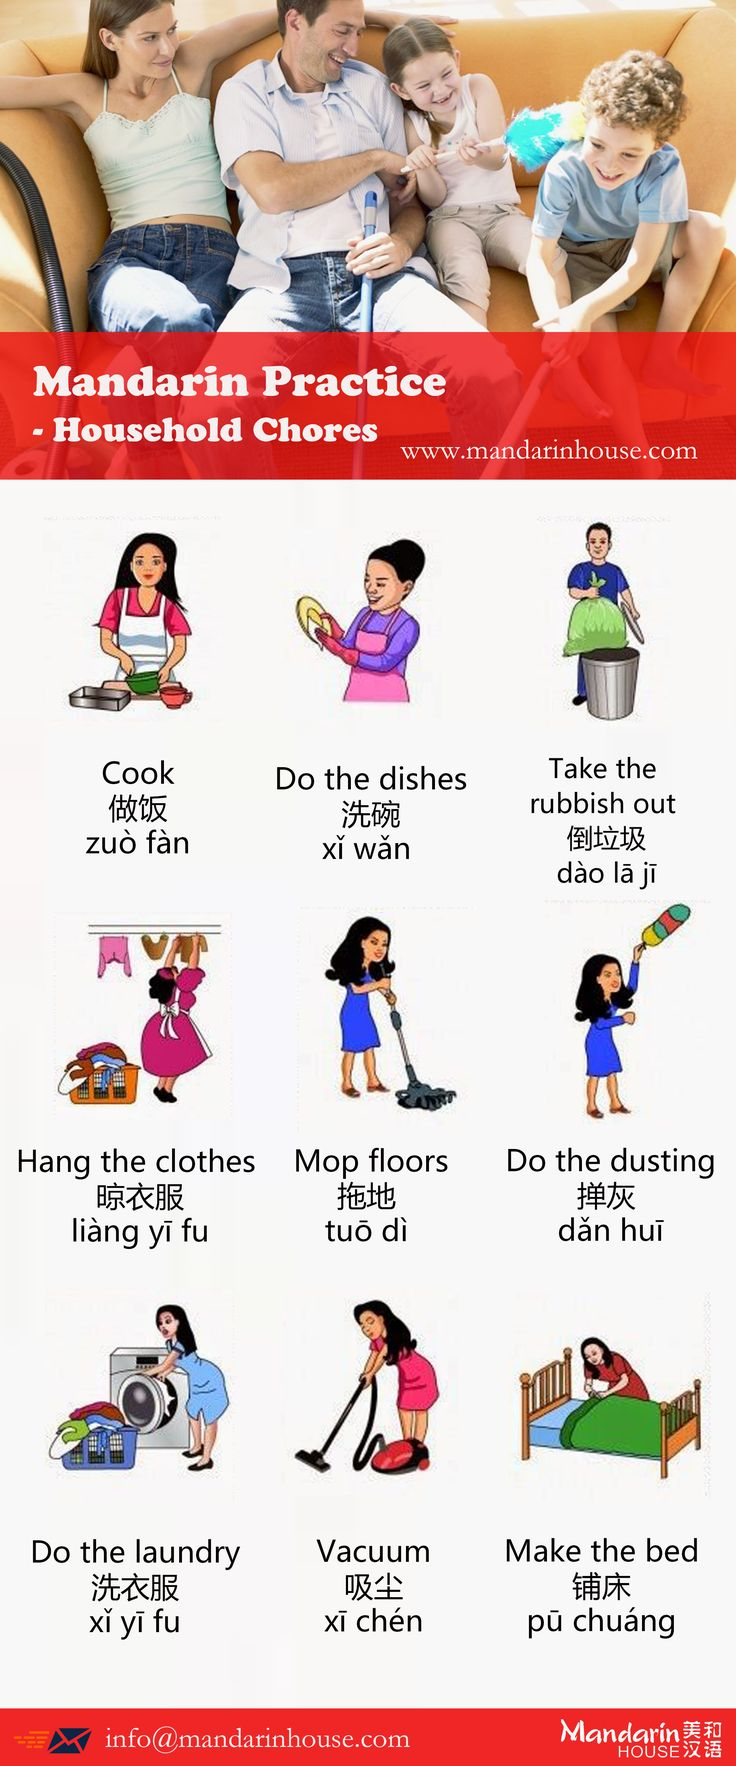 House Chores in Chinese.For more info please contact:sophia.zhang@mandarinhouse.cn The best Mandarin School in China.